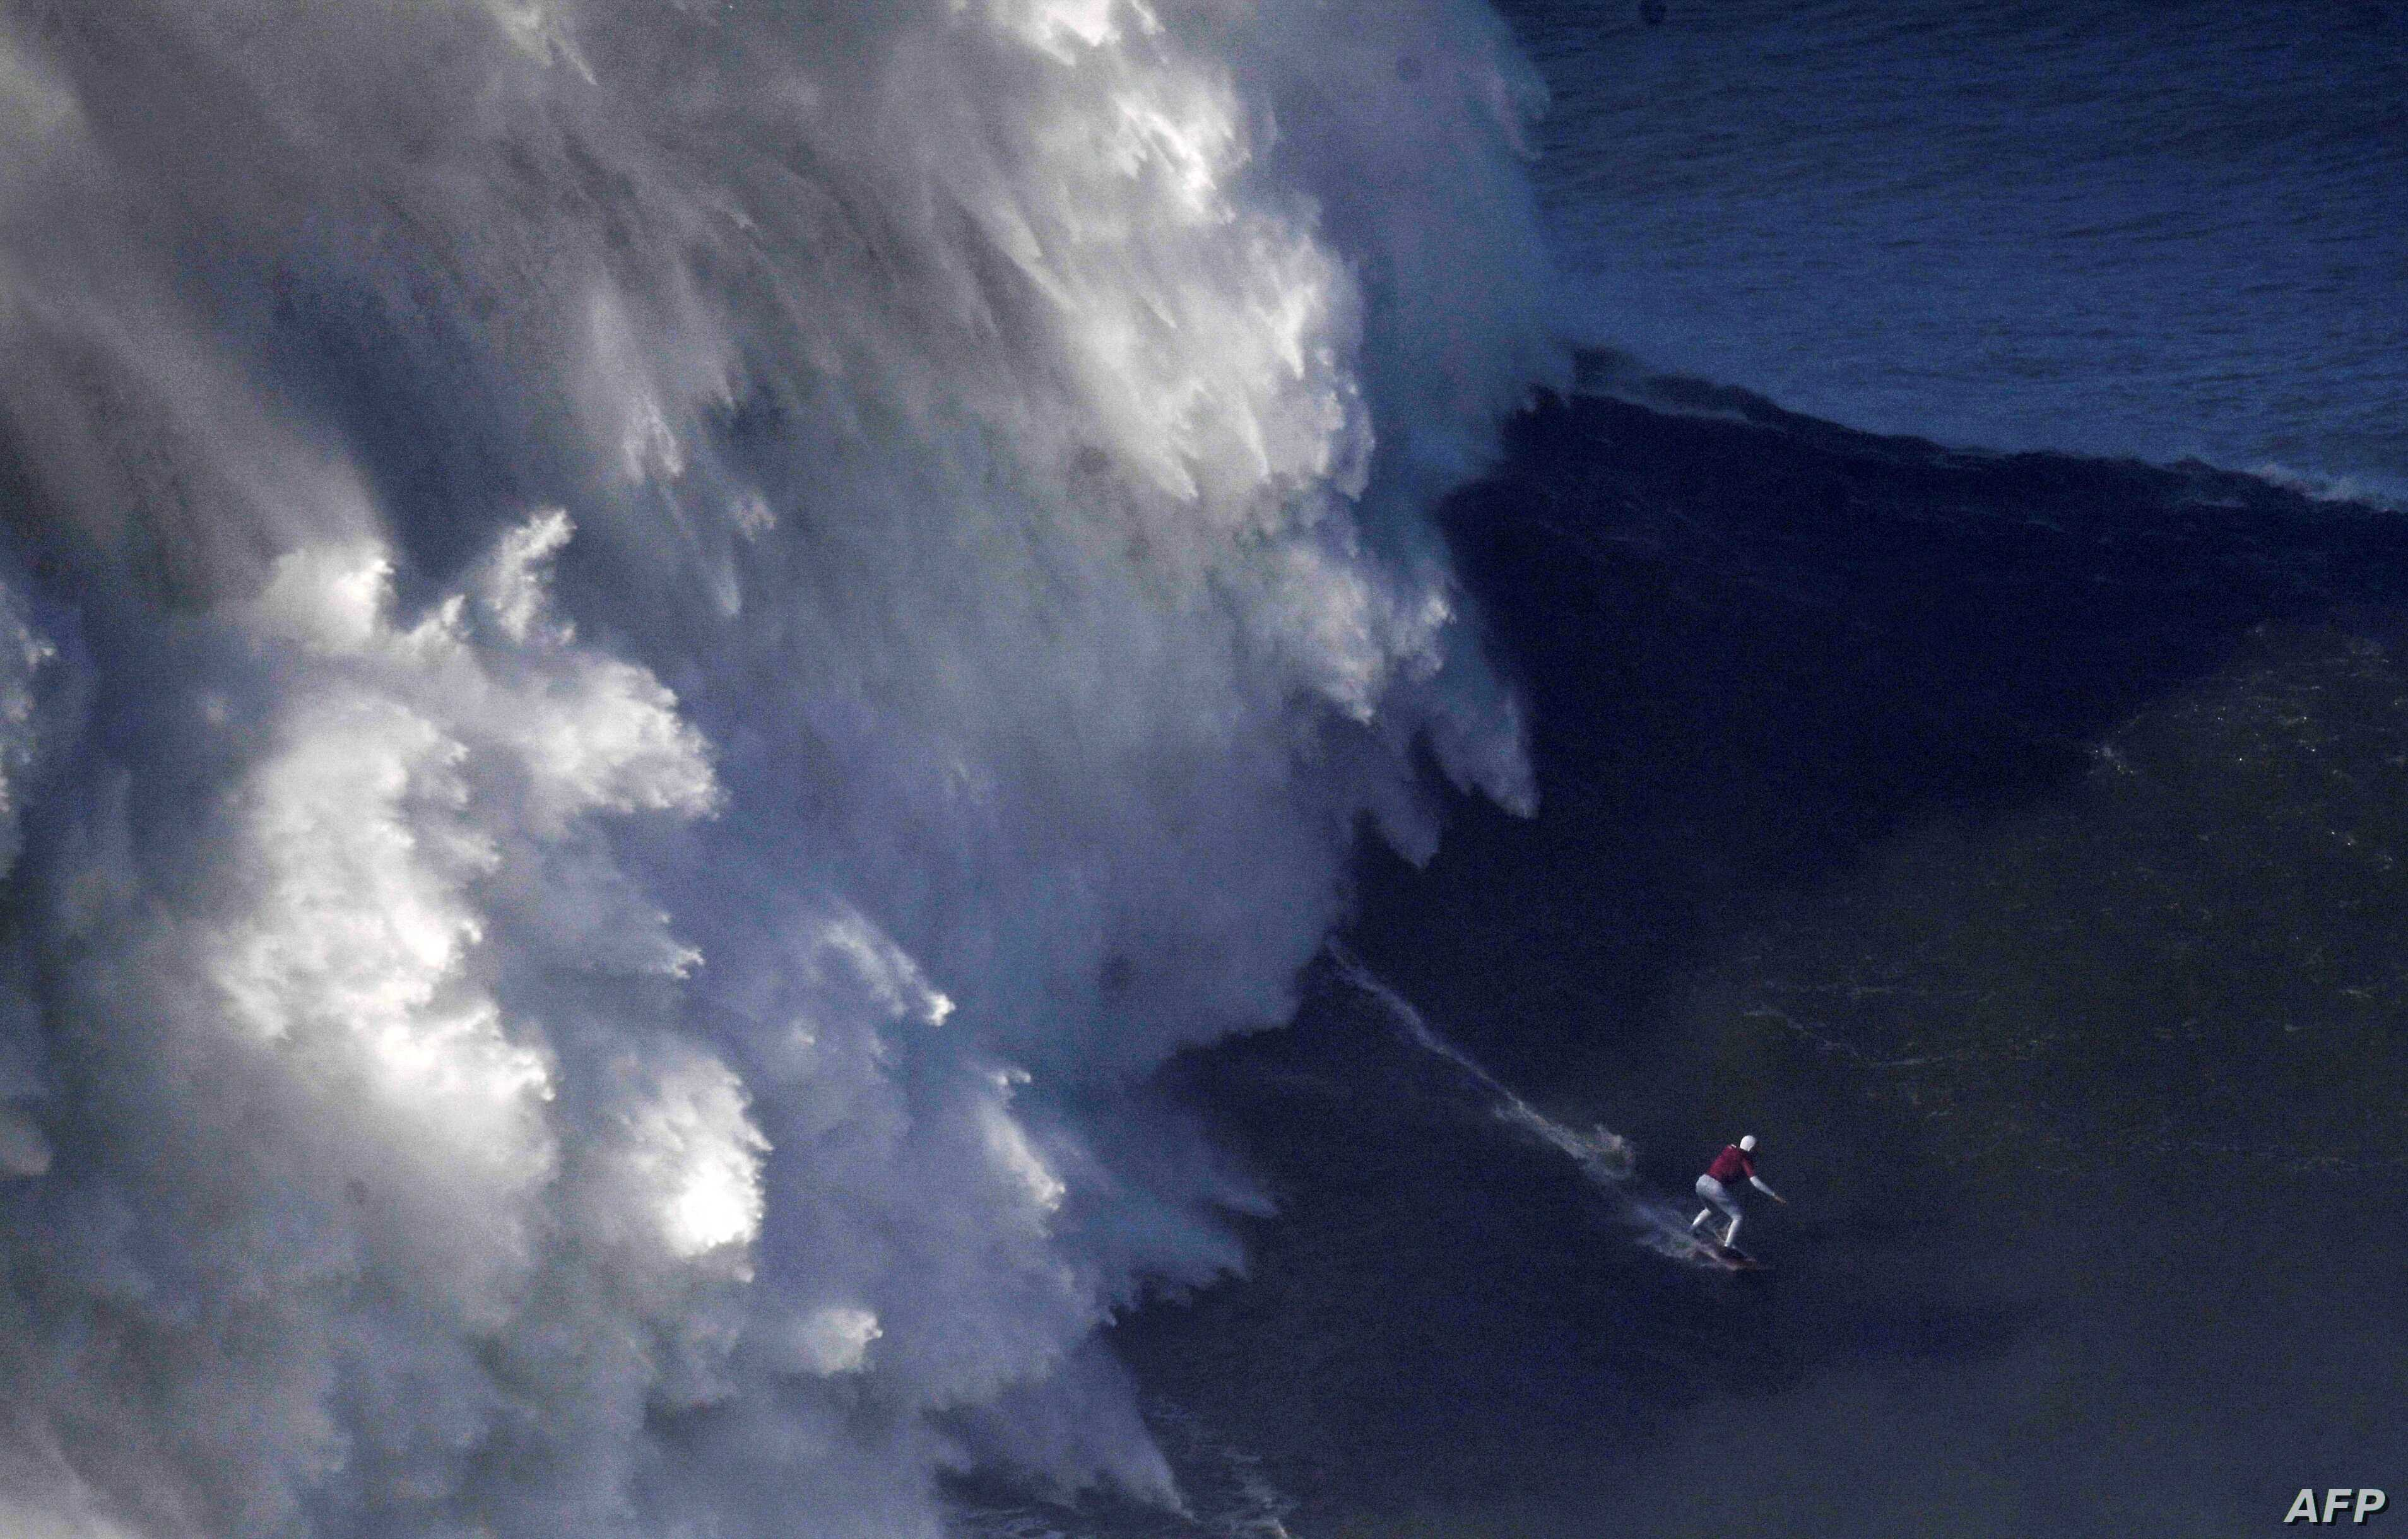 Brazilian Woman Sets Record Surfing Biggest Wave Voice Of